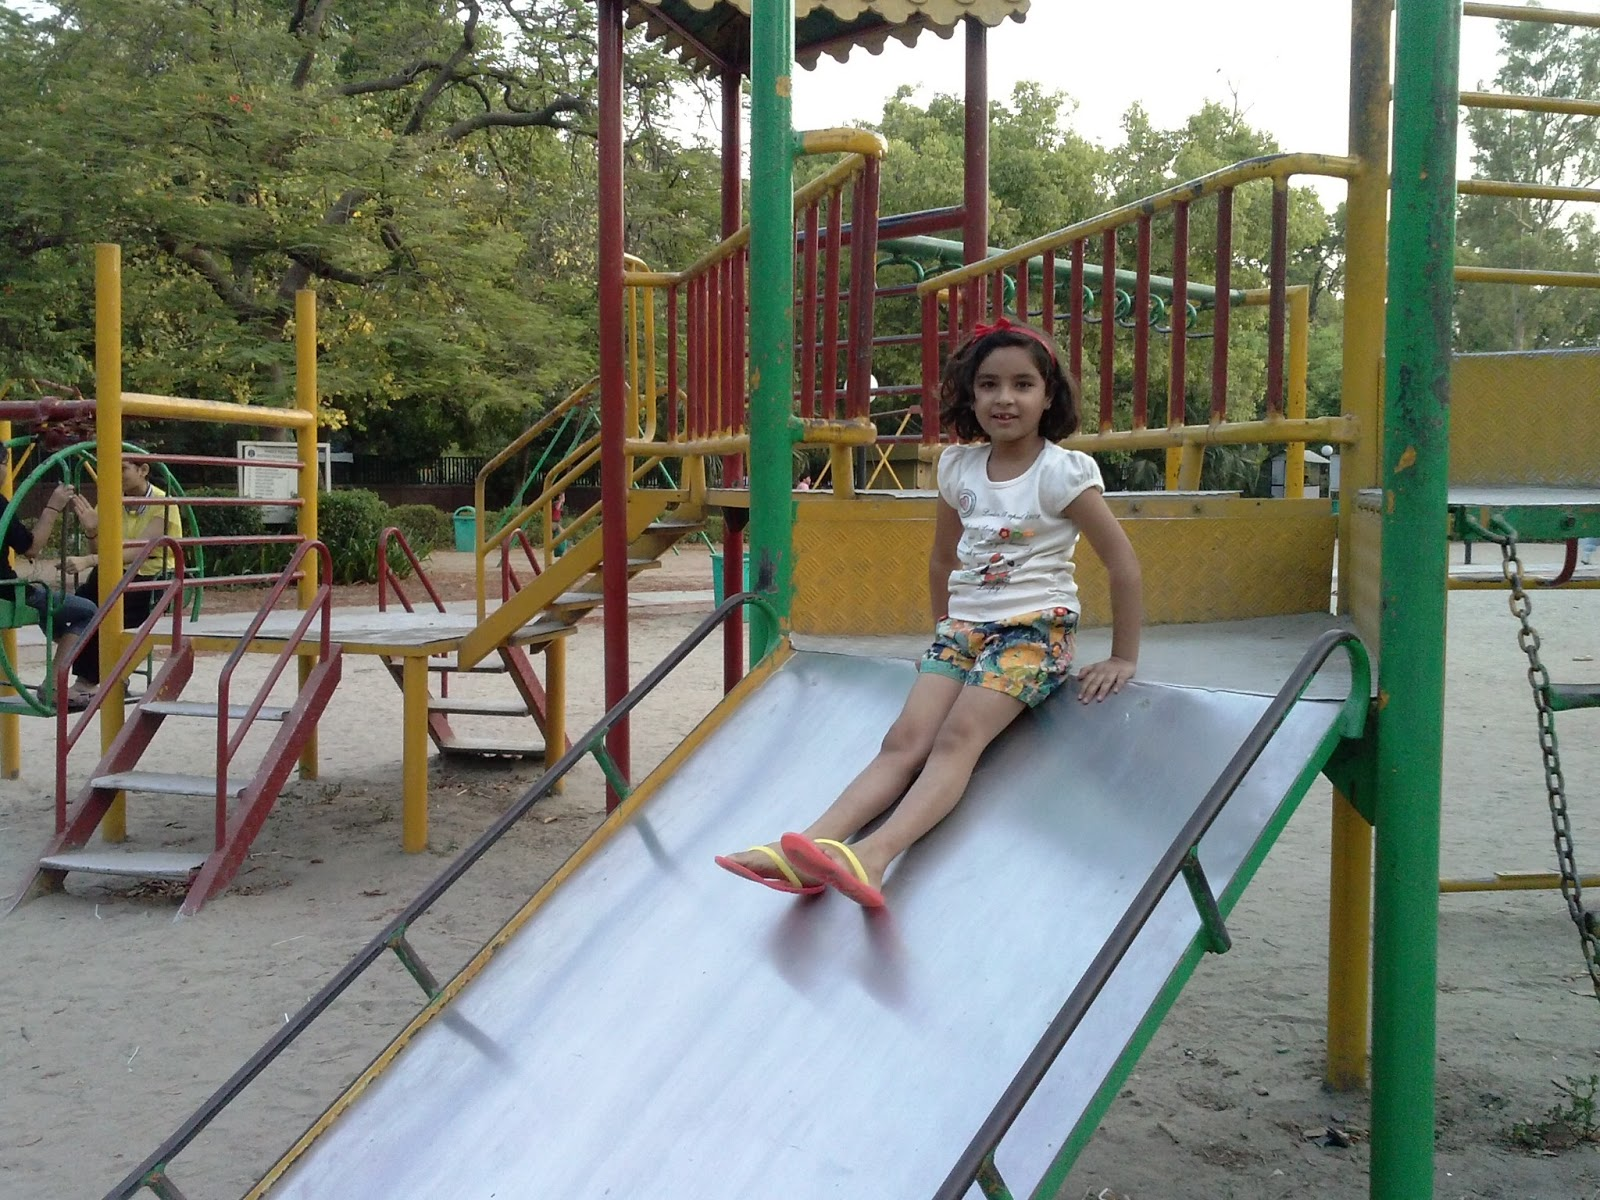 Essay on children playing in park